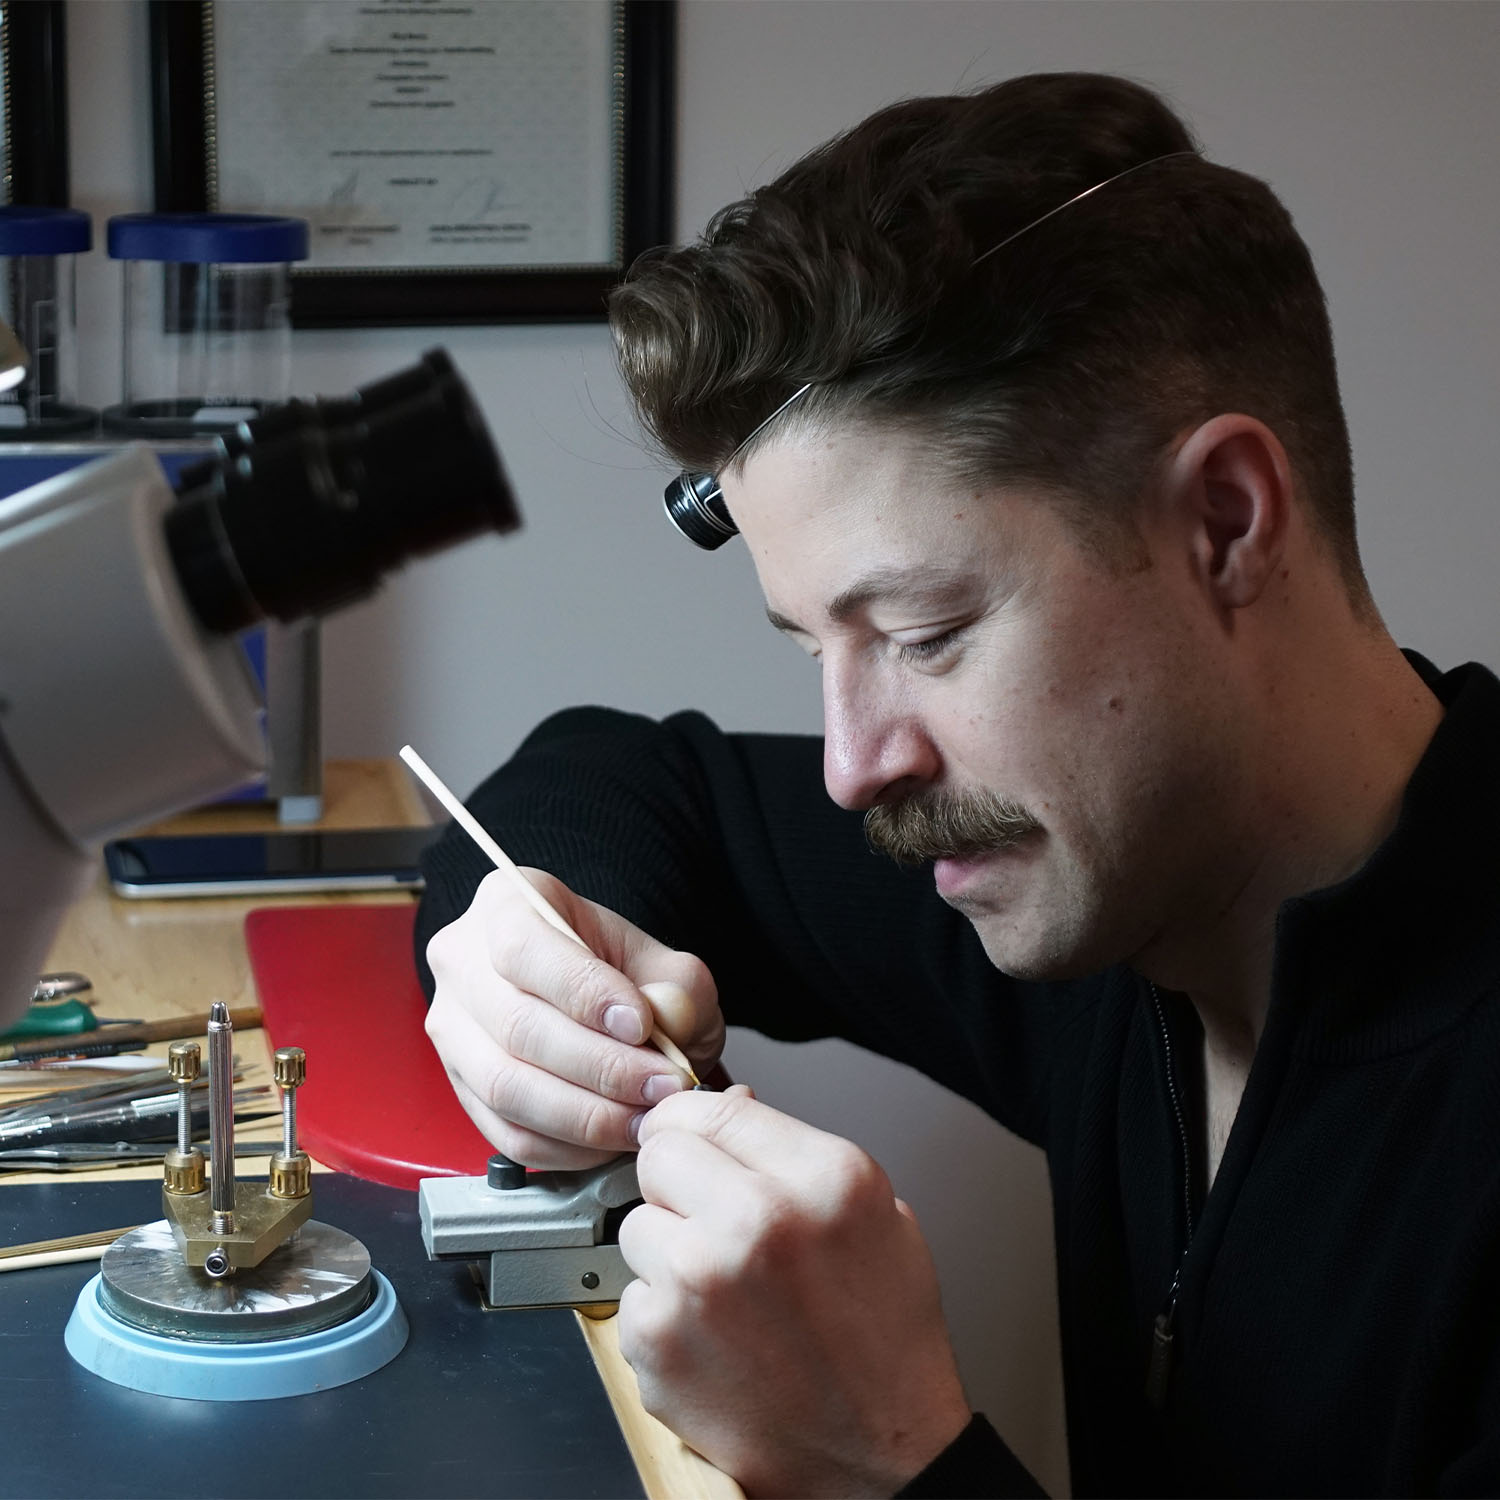 Bradley Taylor Paragon Independent Watchmaker Canada - 10